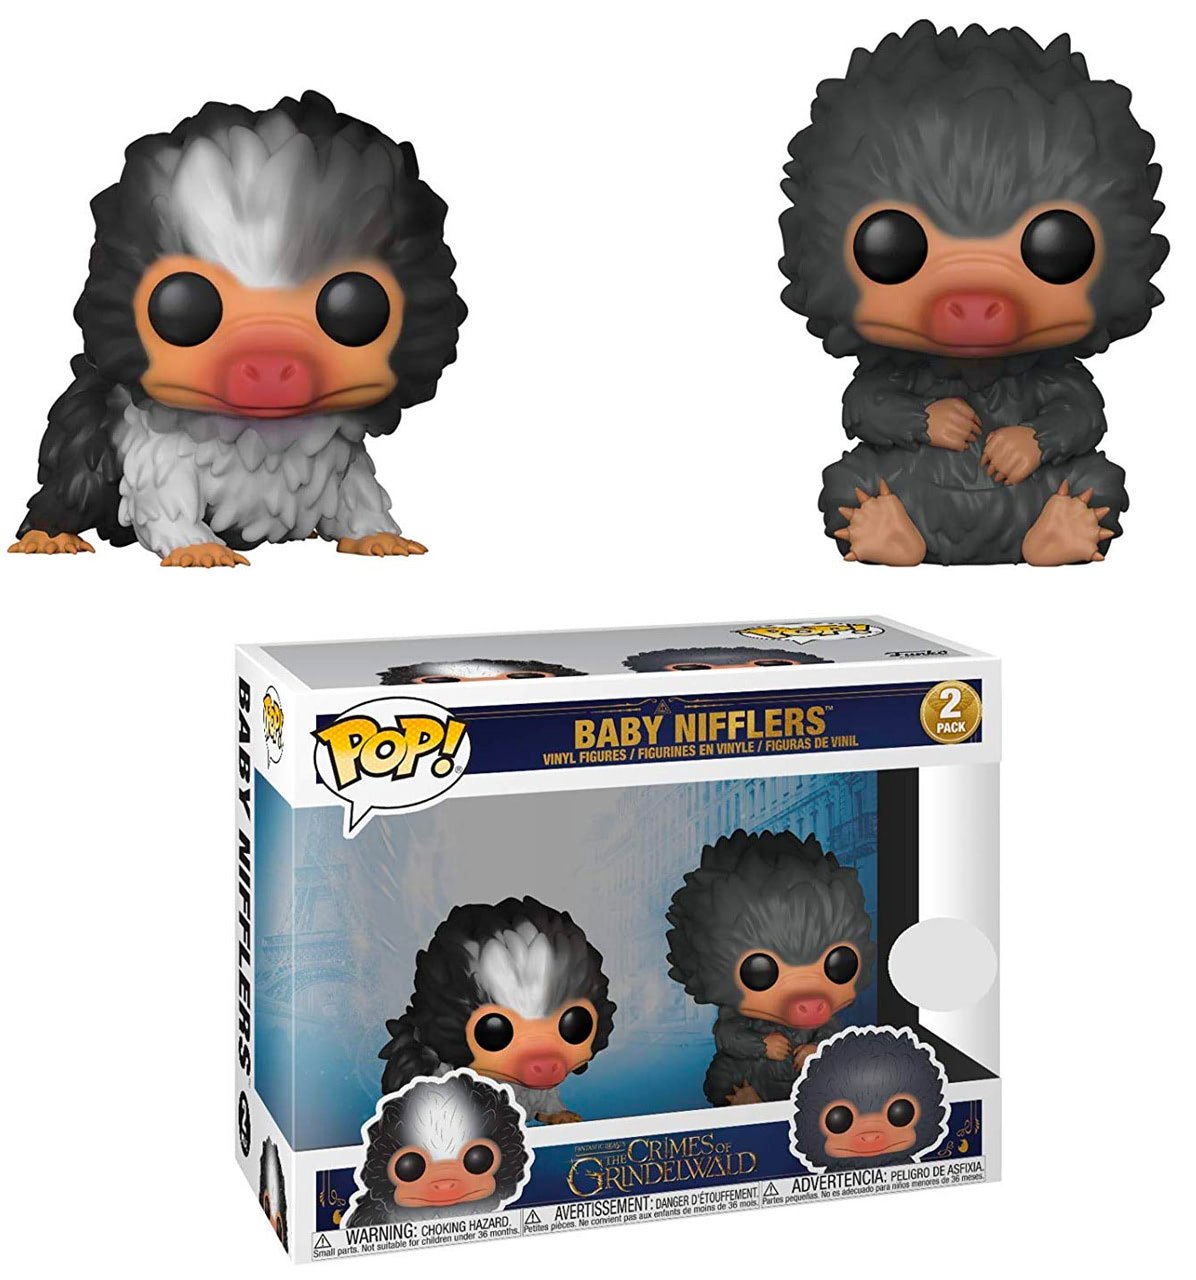 Baby Nifflers (Black & Grey) Pop! Vinyl